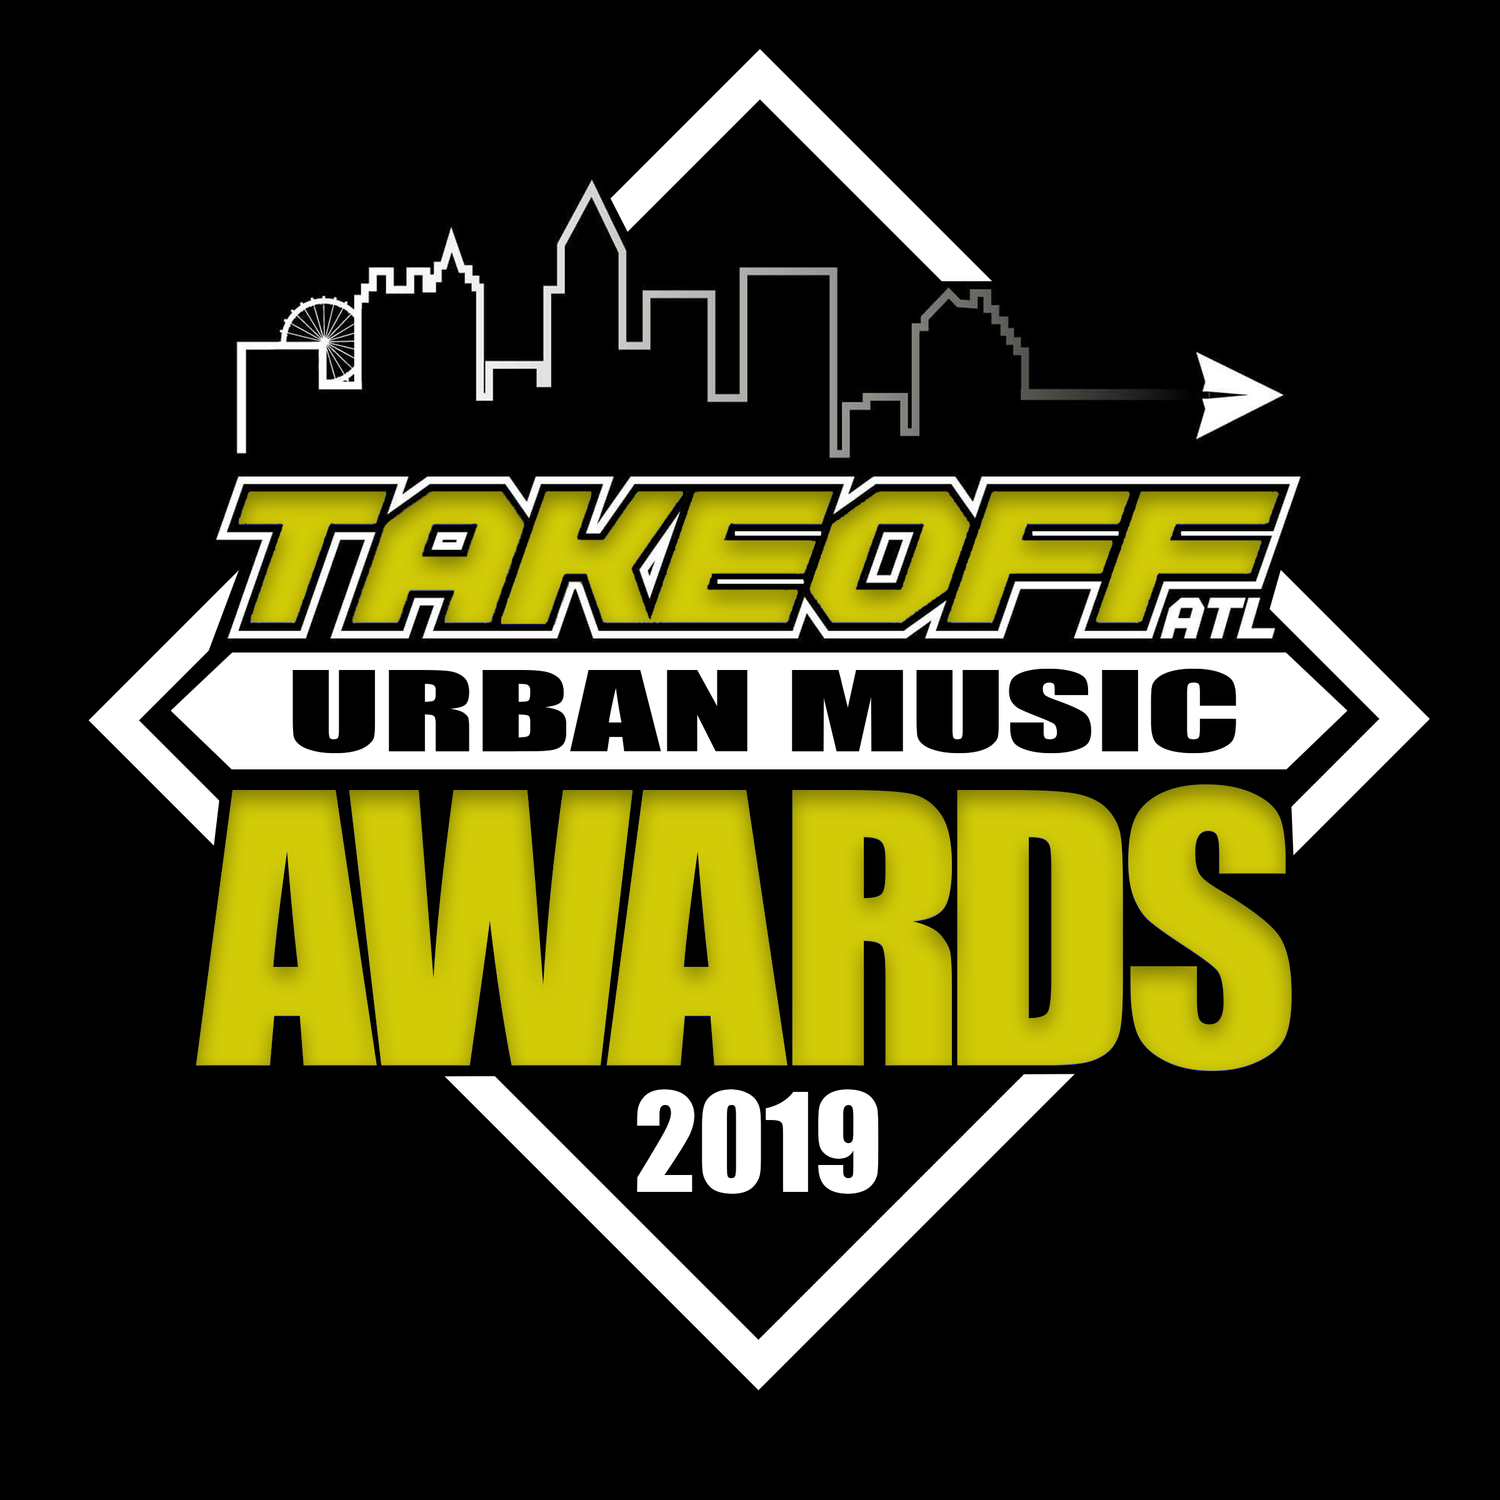 TAKEOFF ATL URBAN MUSIC 2019 AWARDS